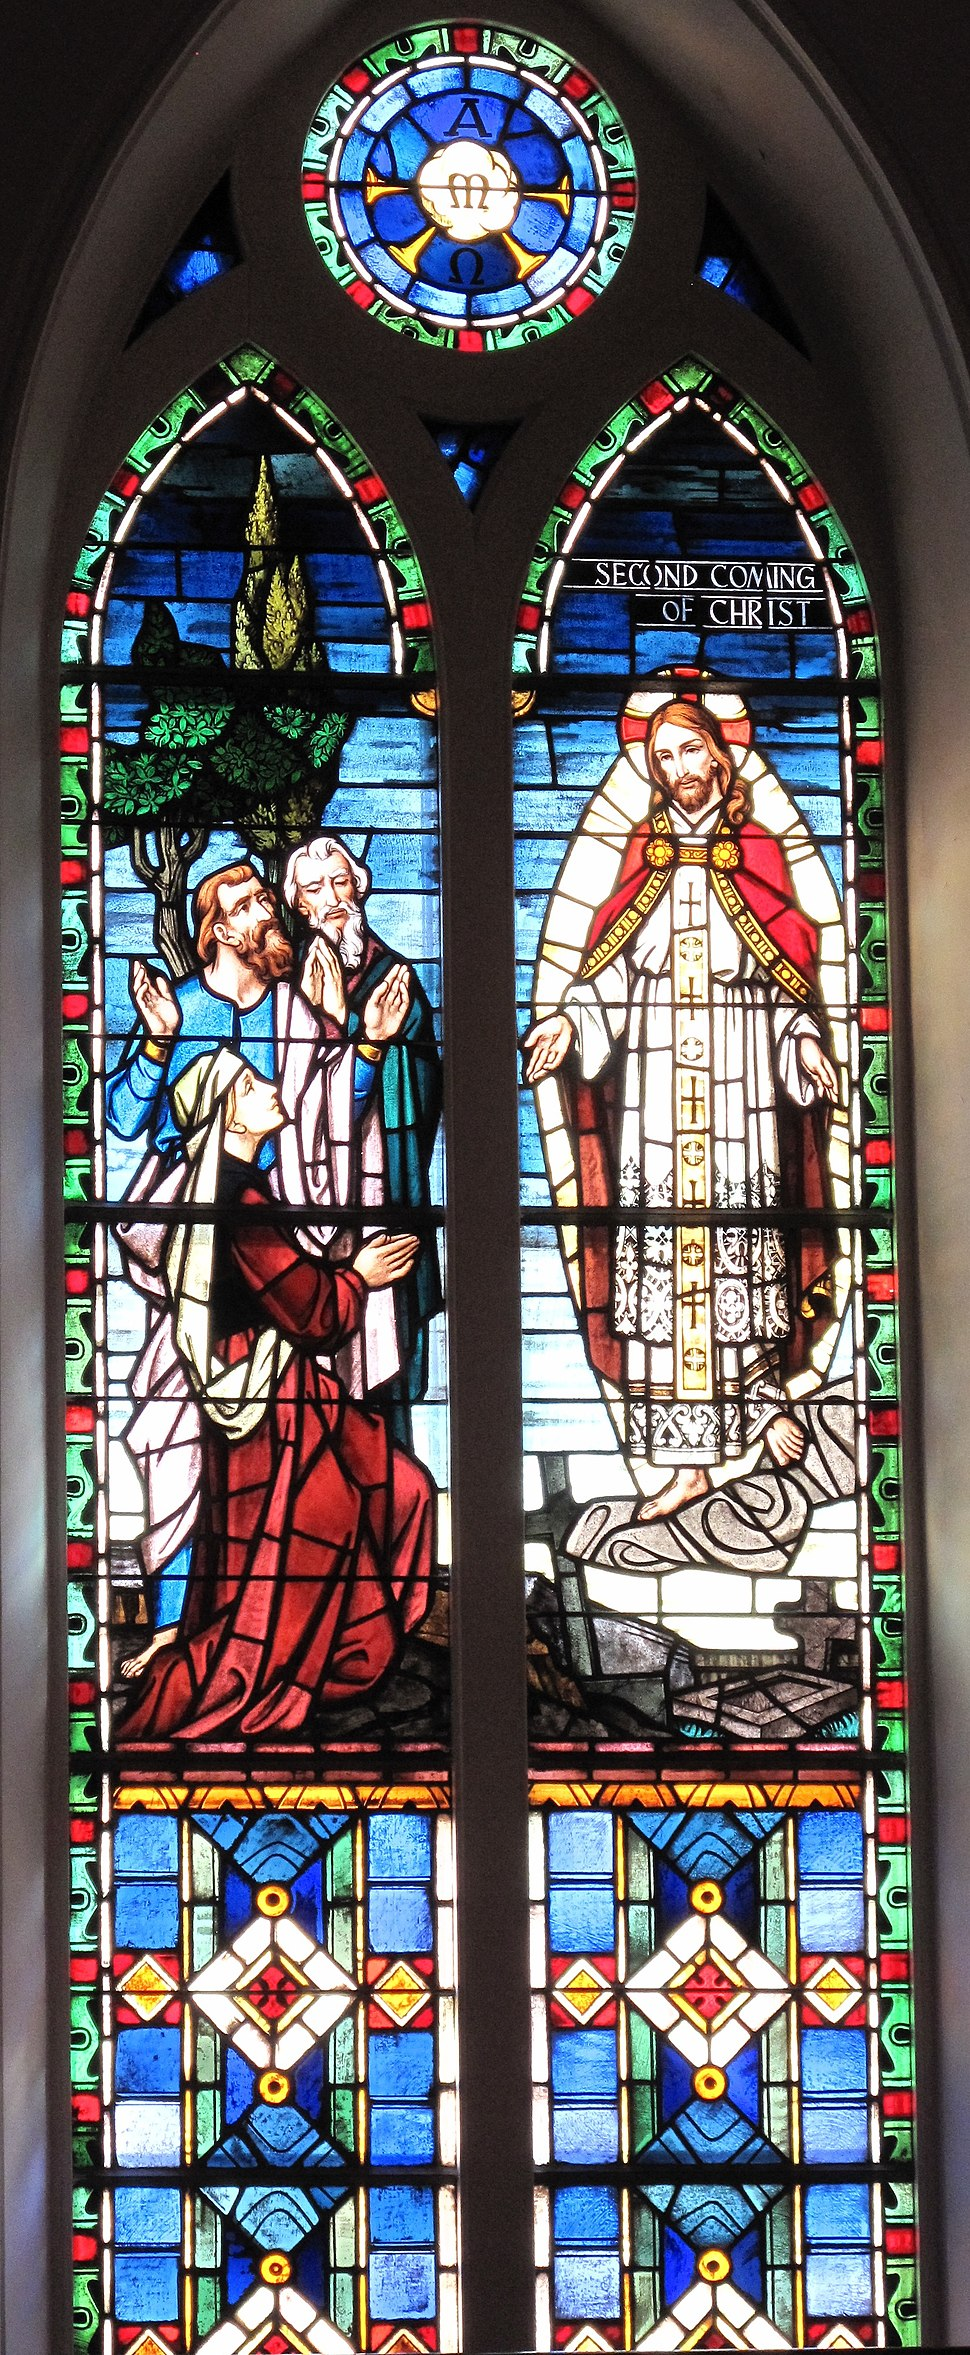 Second Coming of Christ window